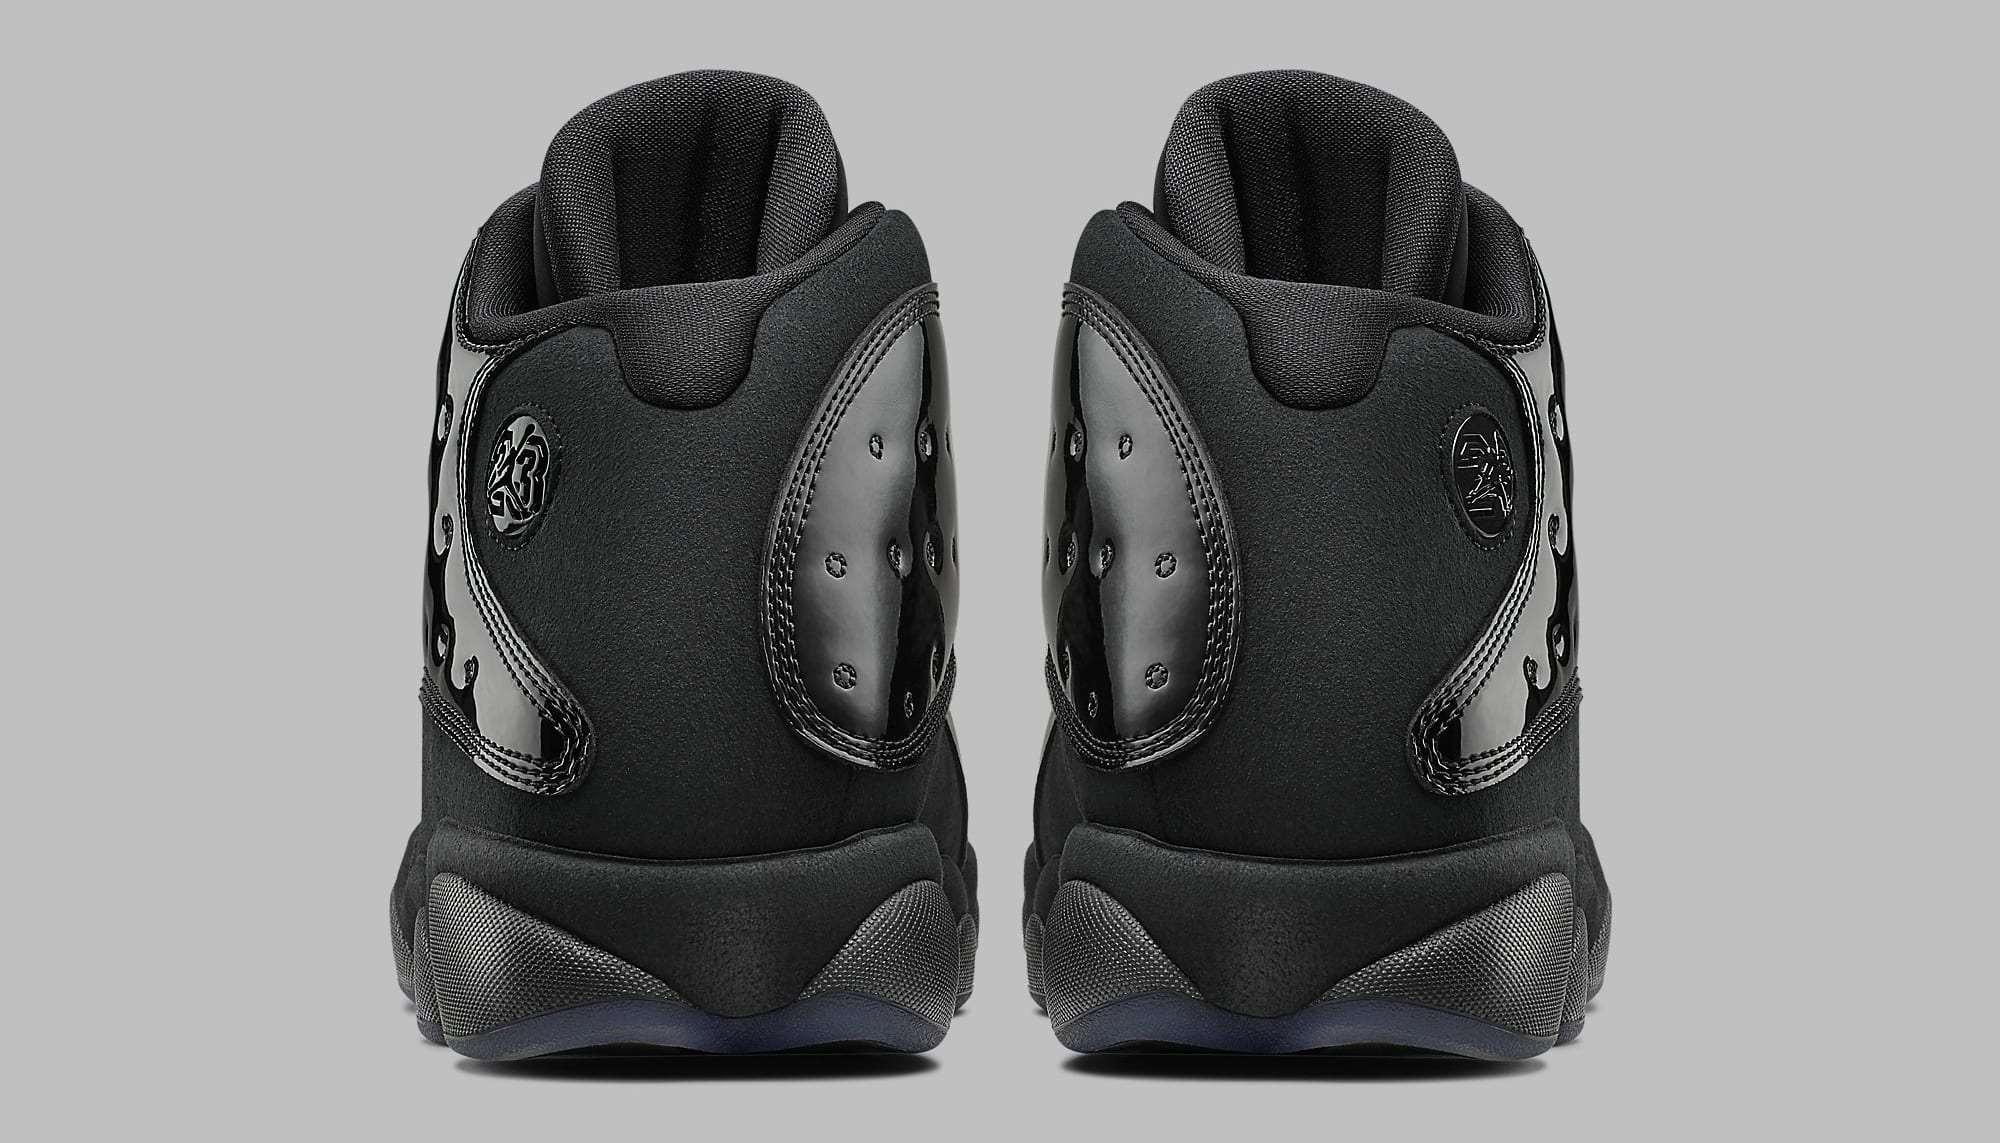 hot sale online f0ef0 9b576 Image via Nike Air Jordan 13 Retro  Cap and Gown  414571-012 Heel